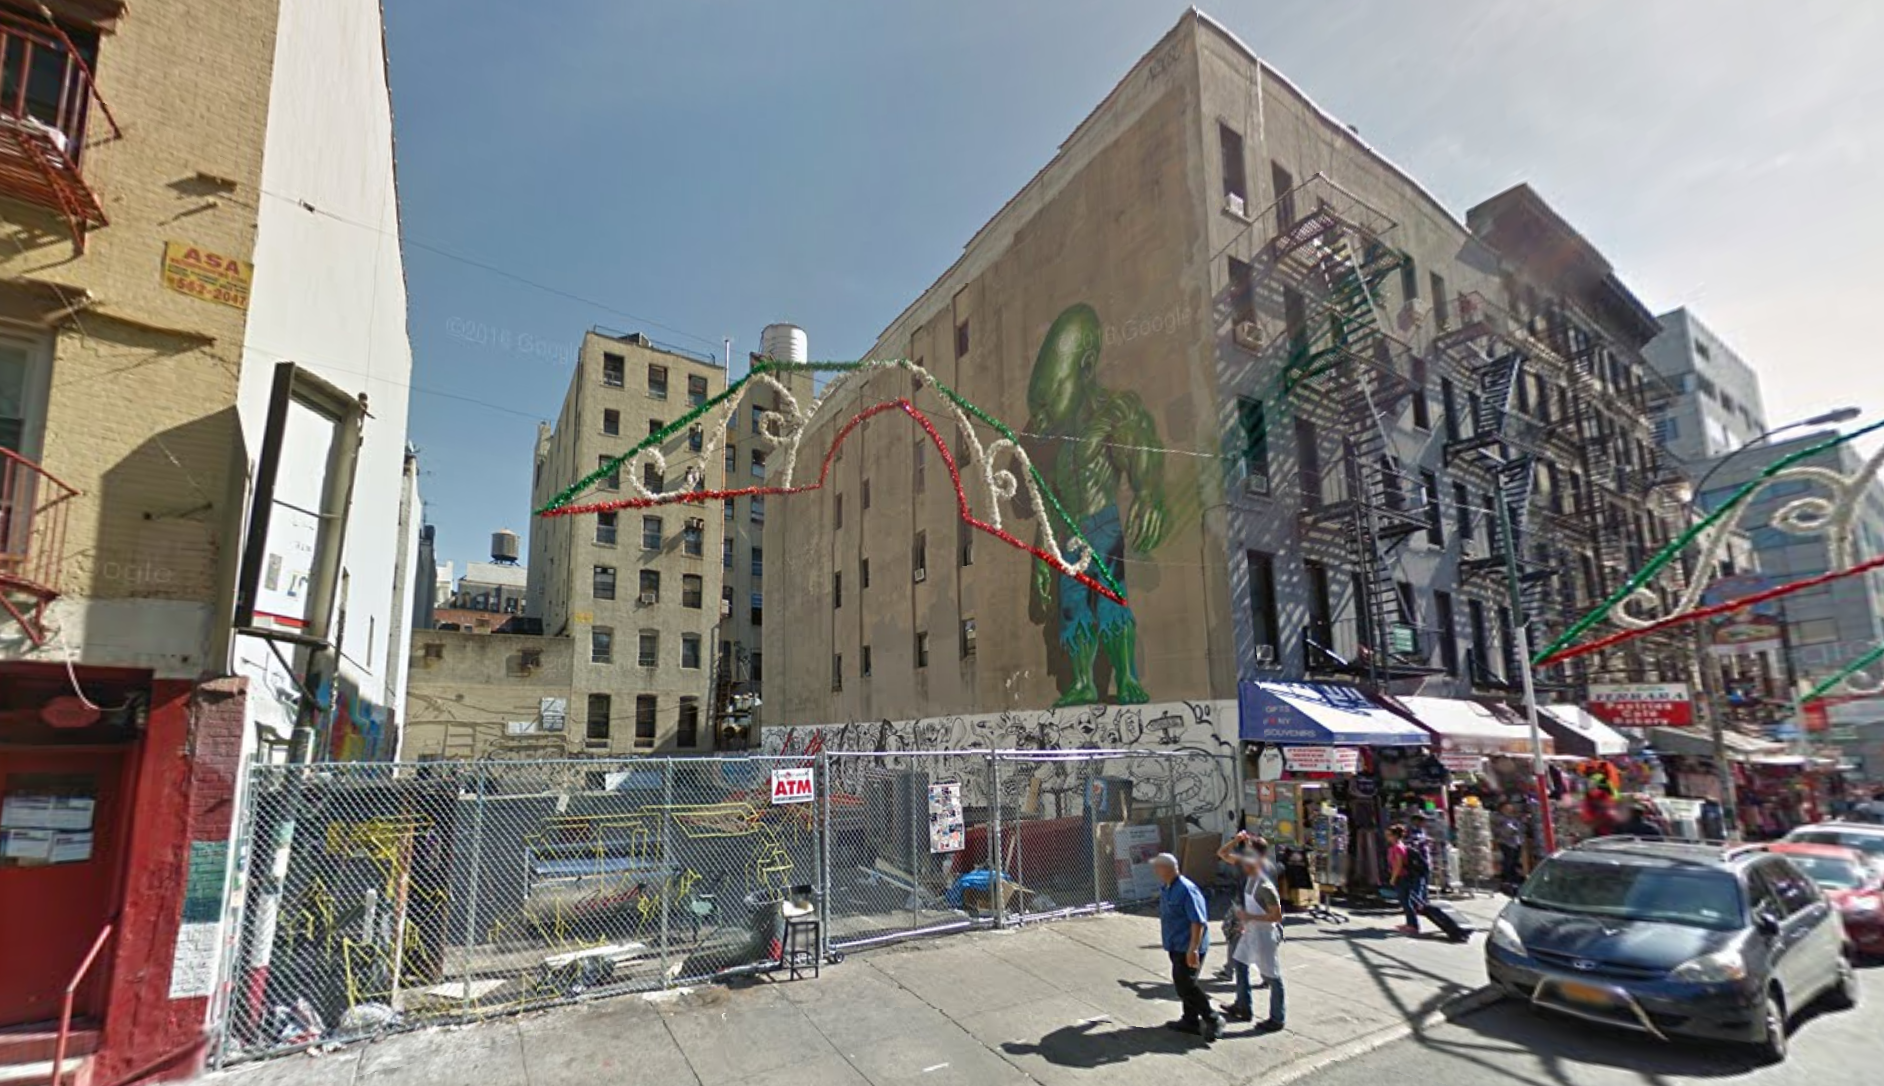 114 Mulberry Street, image via Google Maps